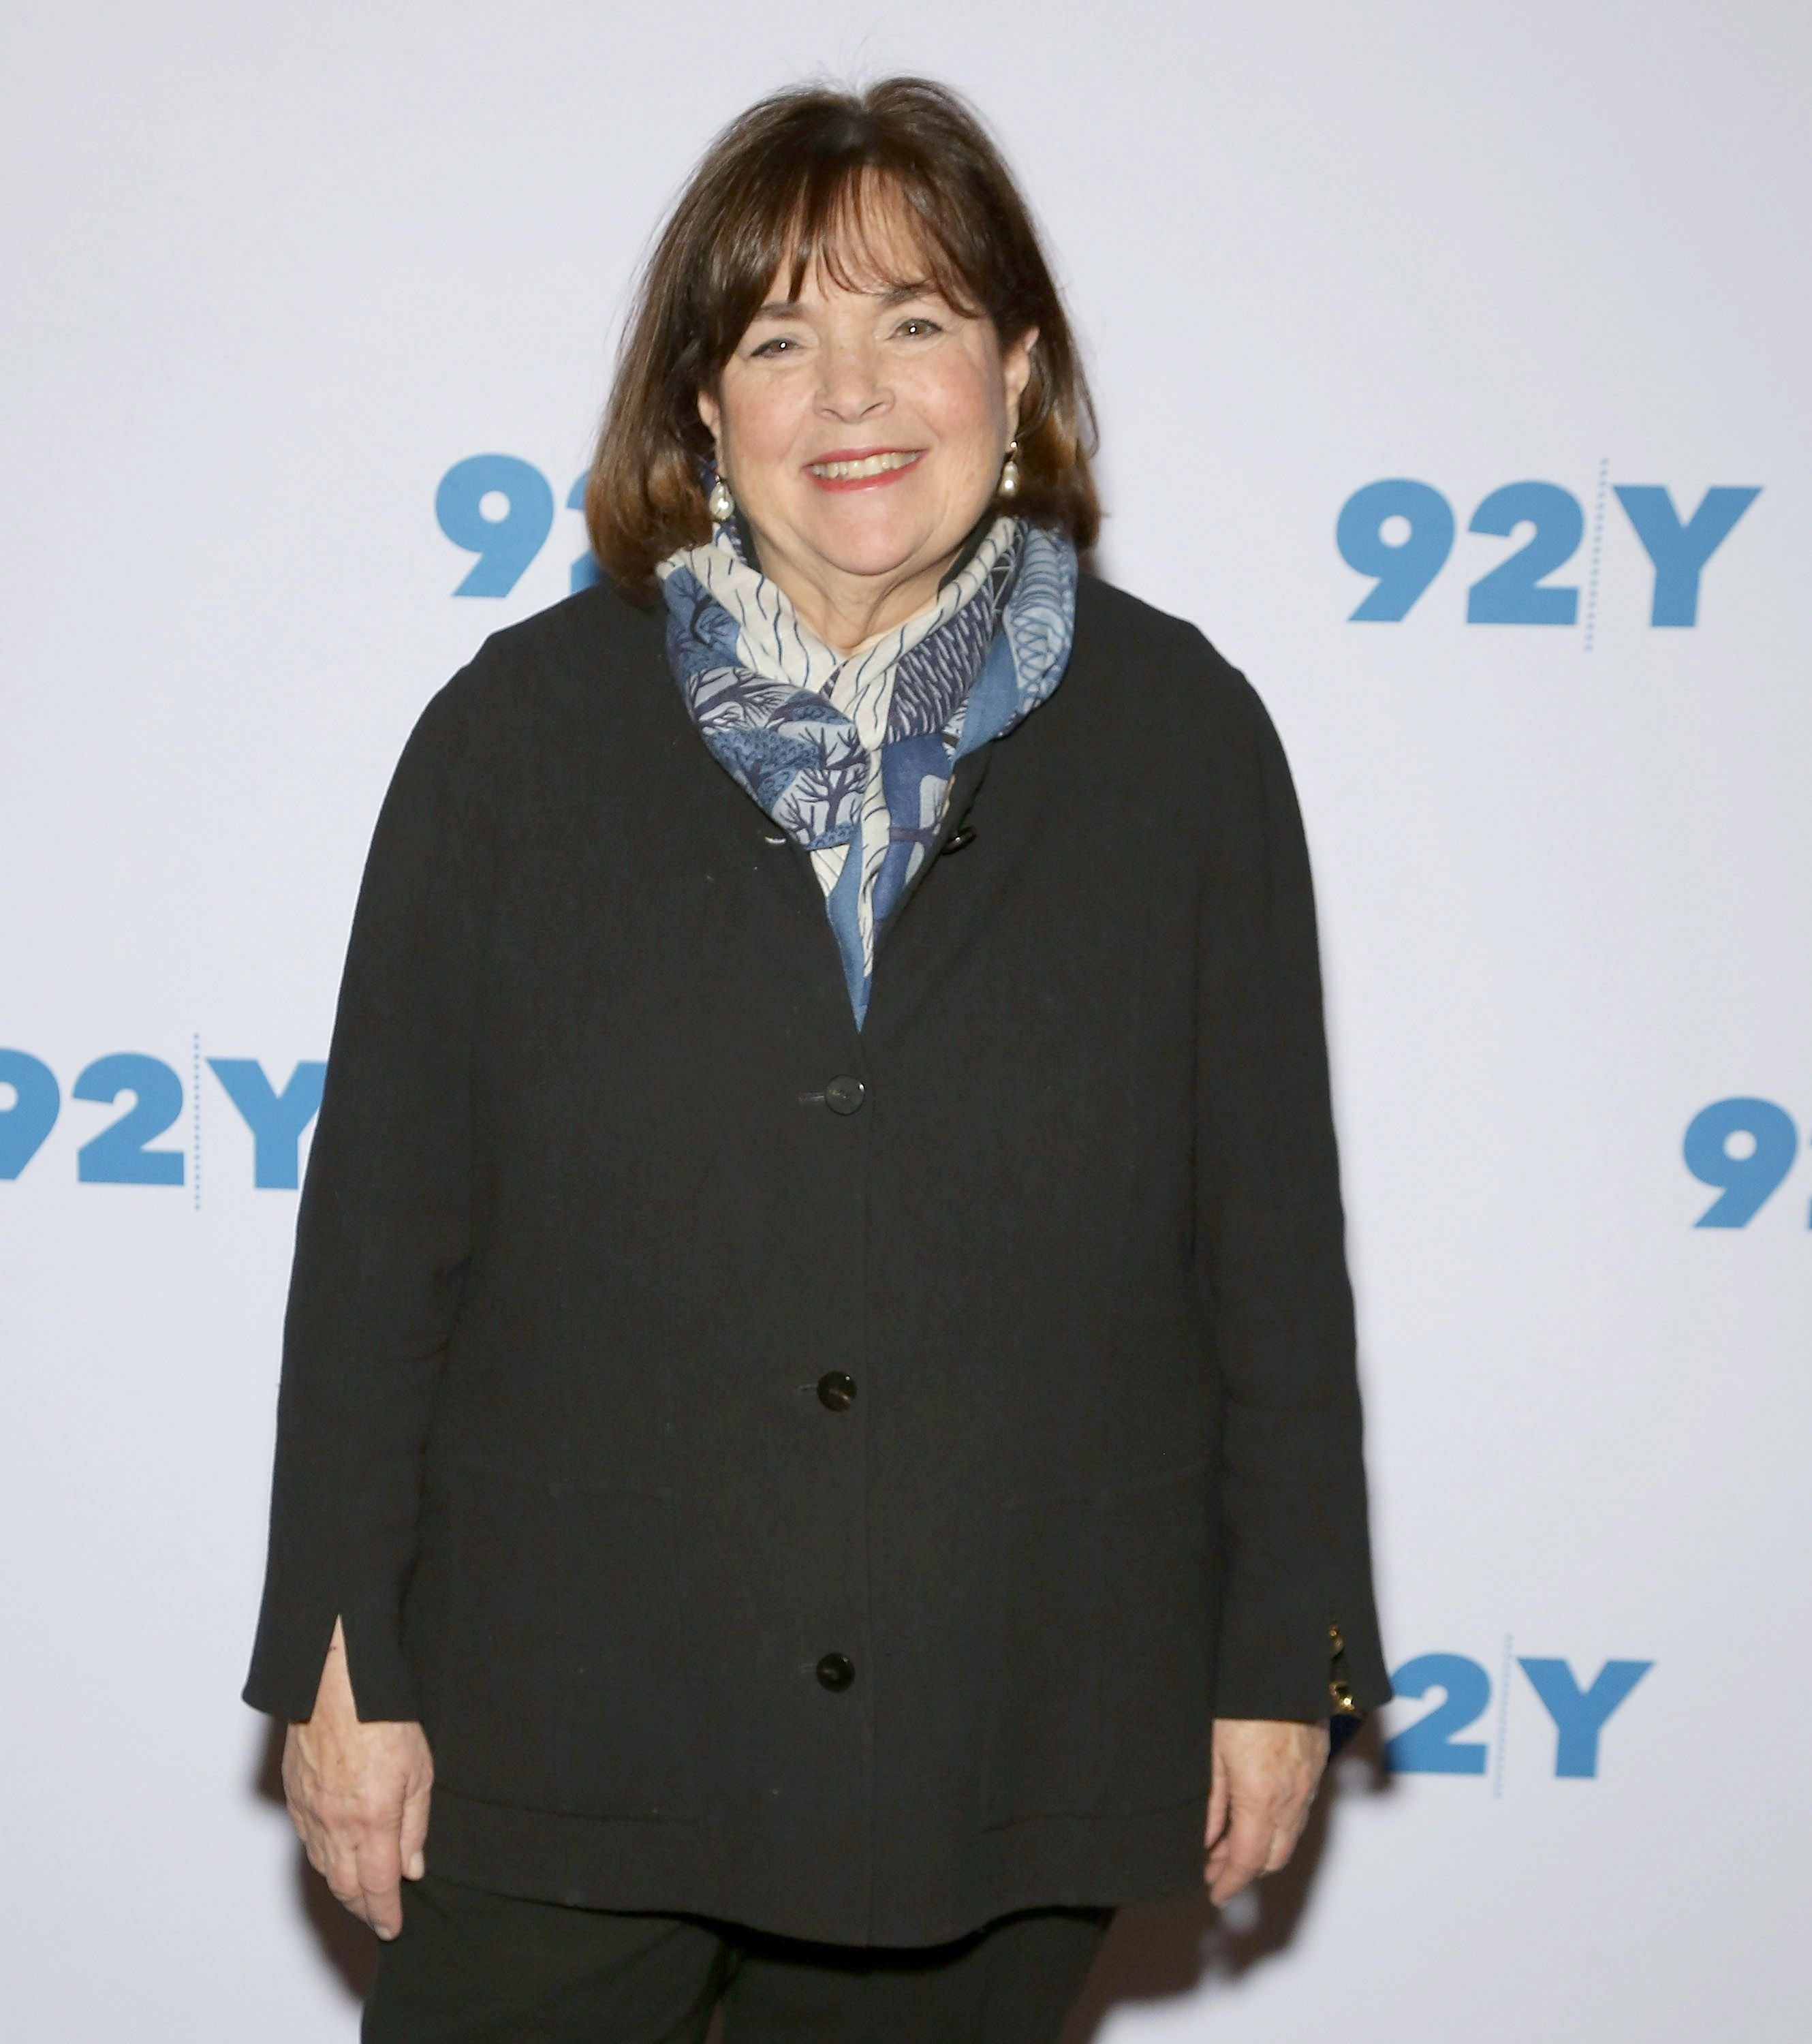 Ina Garten attends Ina Garten in Conversation with Danny Meyer at 92nd Street Y on January 31, 2017. | Photo: Getty Images.